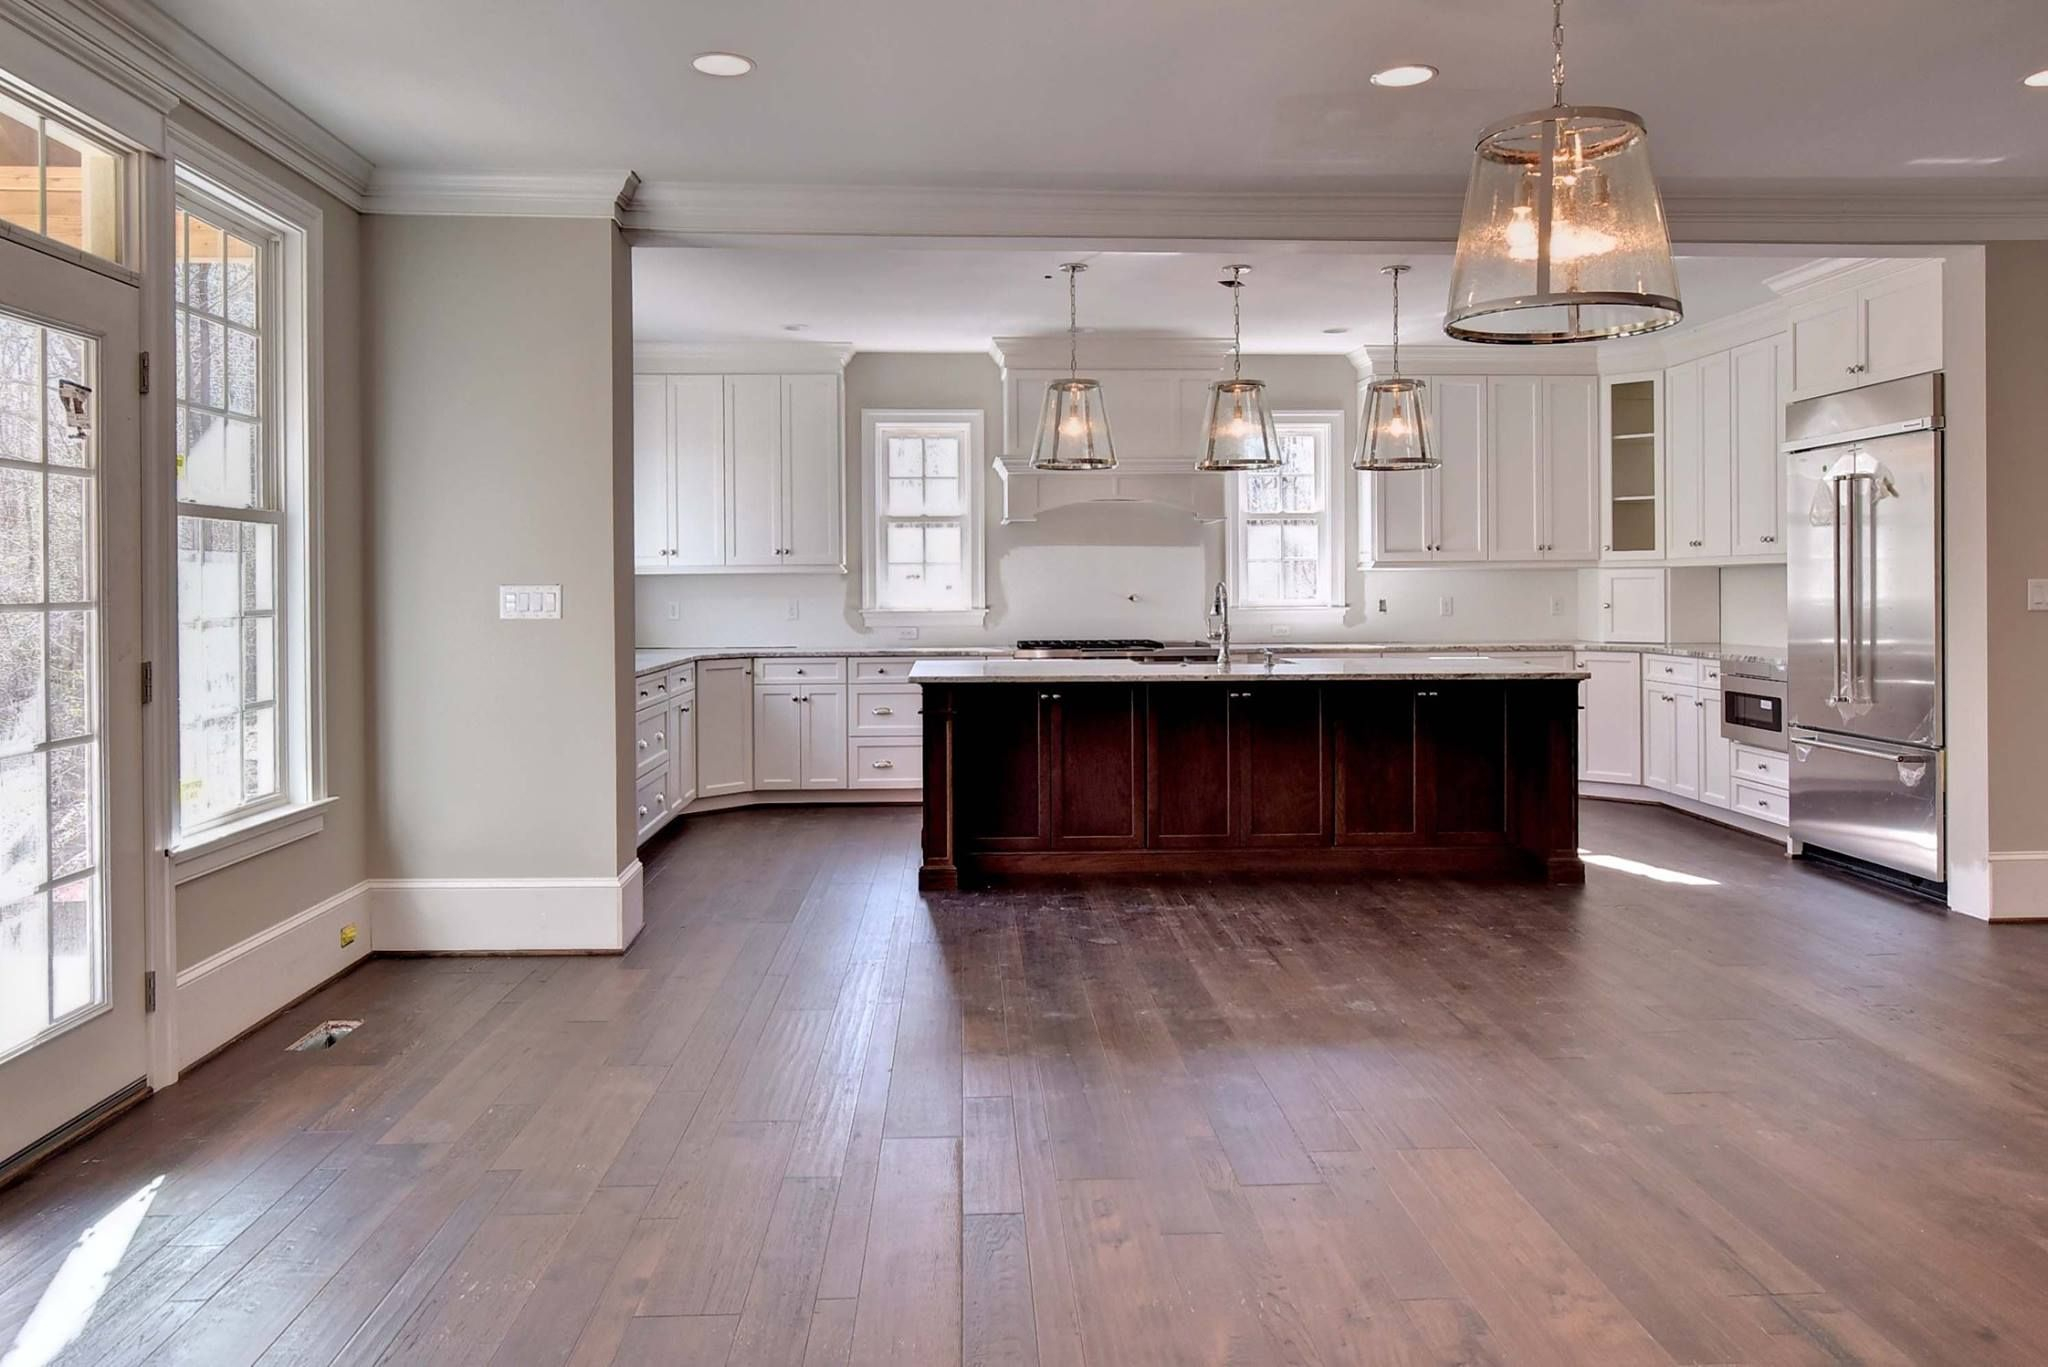 Sherwin Williams Agreeable Gray Paint Inspiration